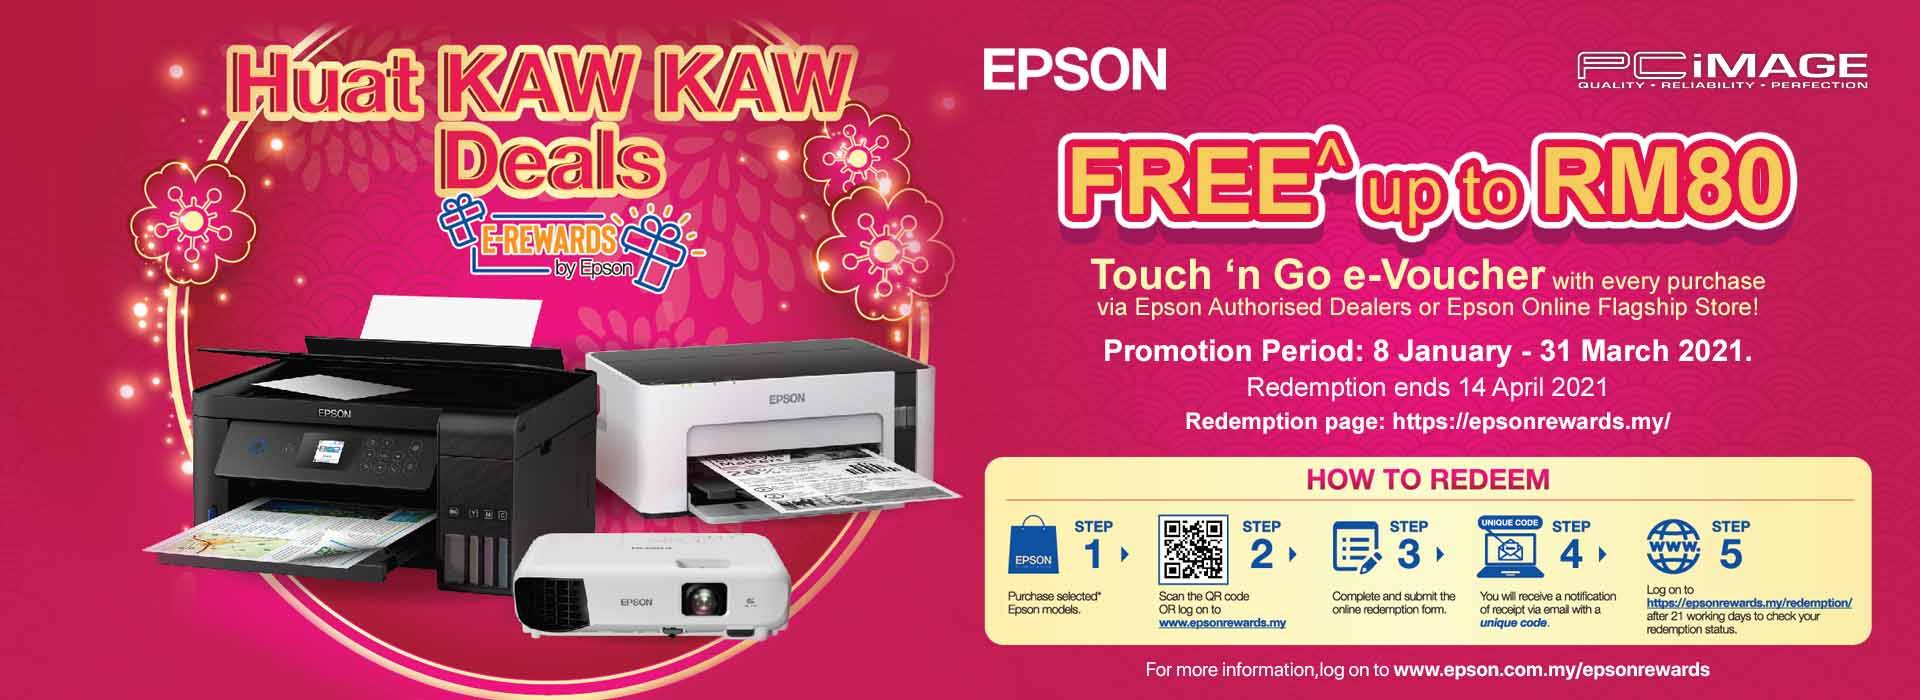 Epson E-Rewards Huat Kaw Kaw Deals 31 March